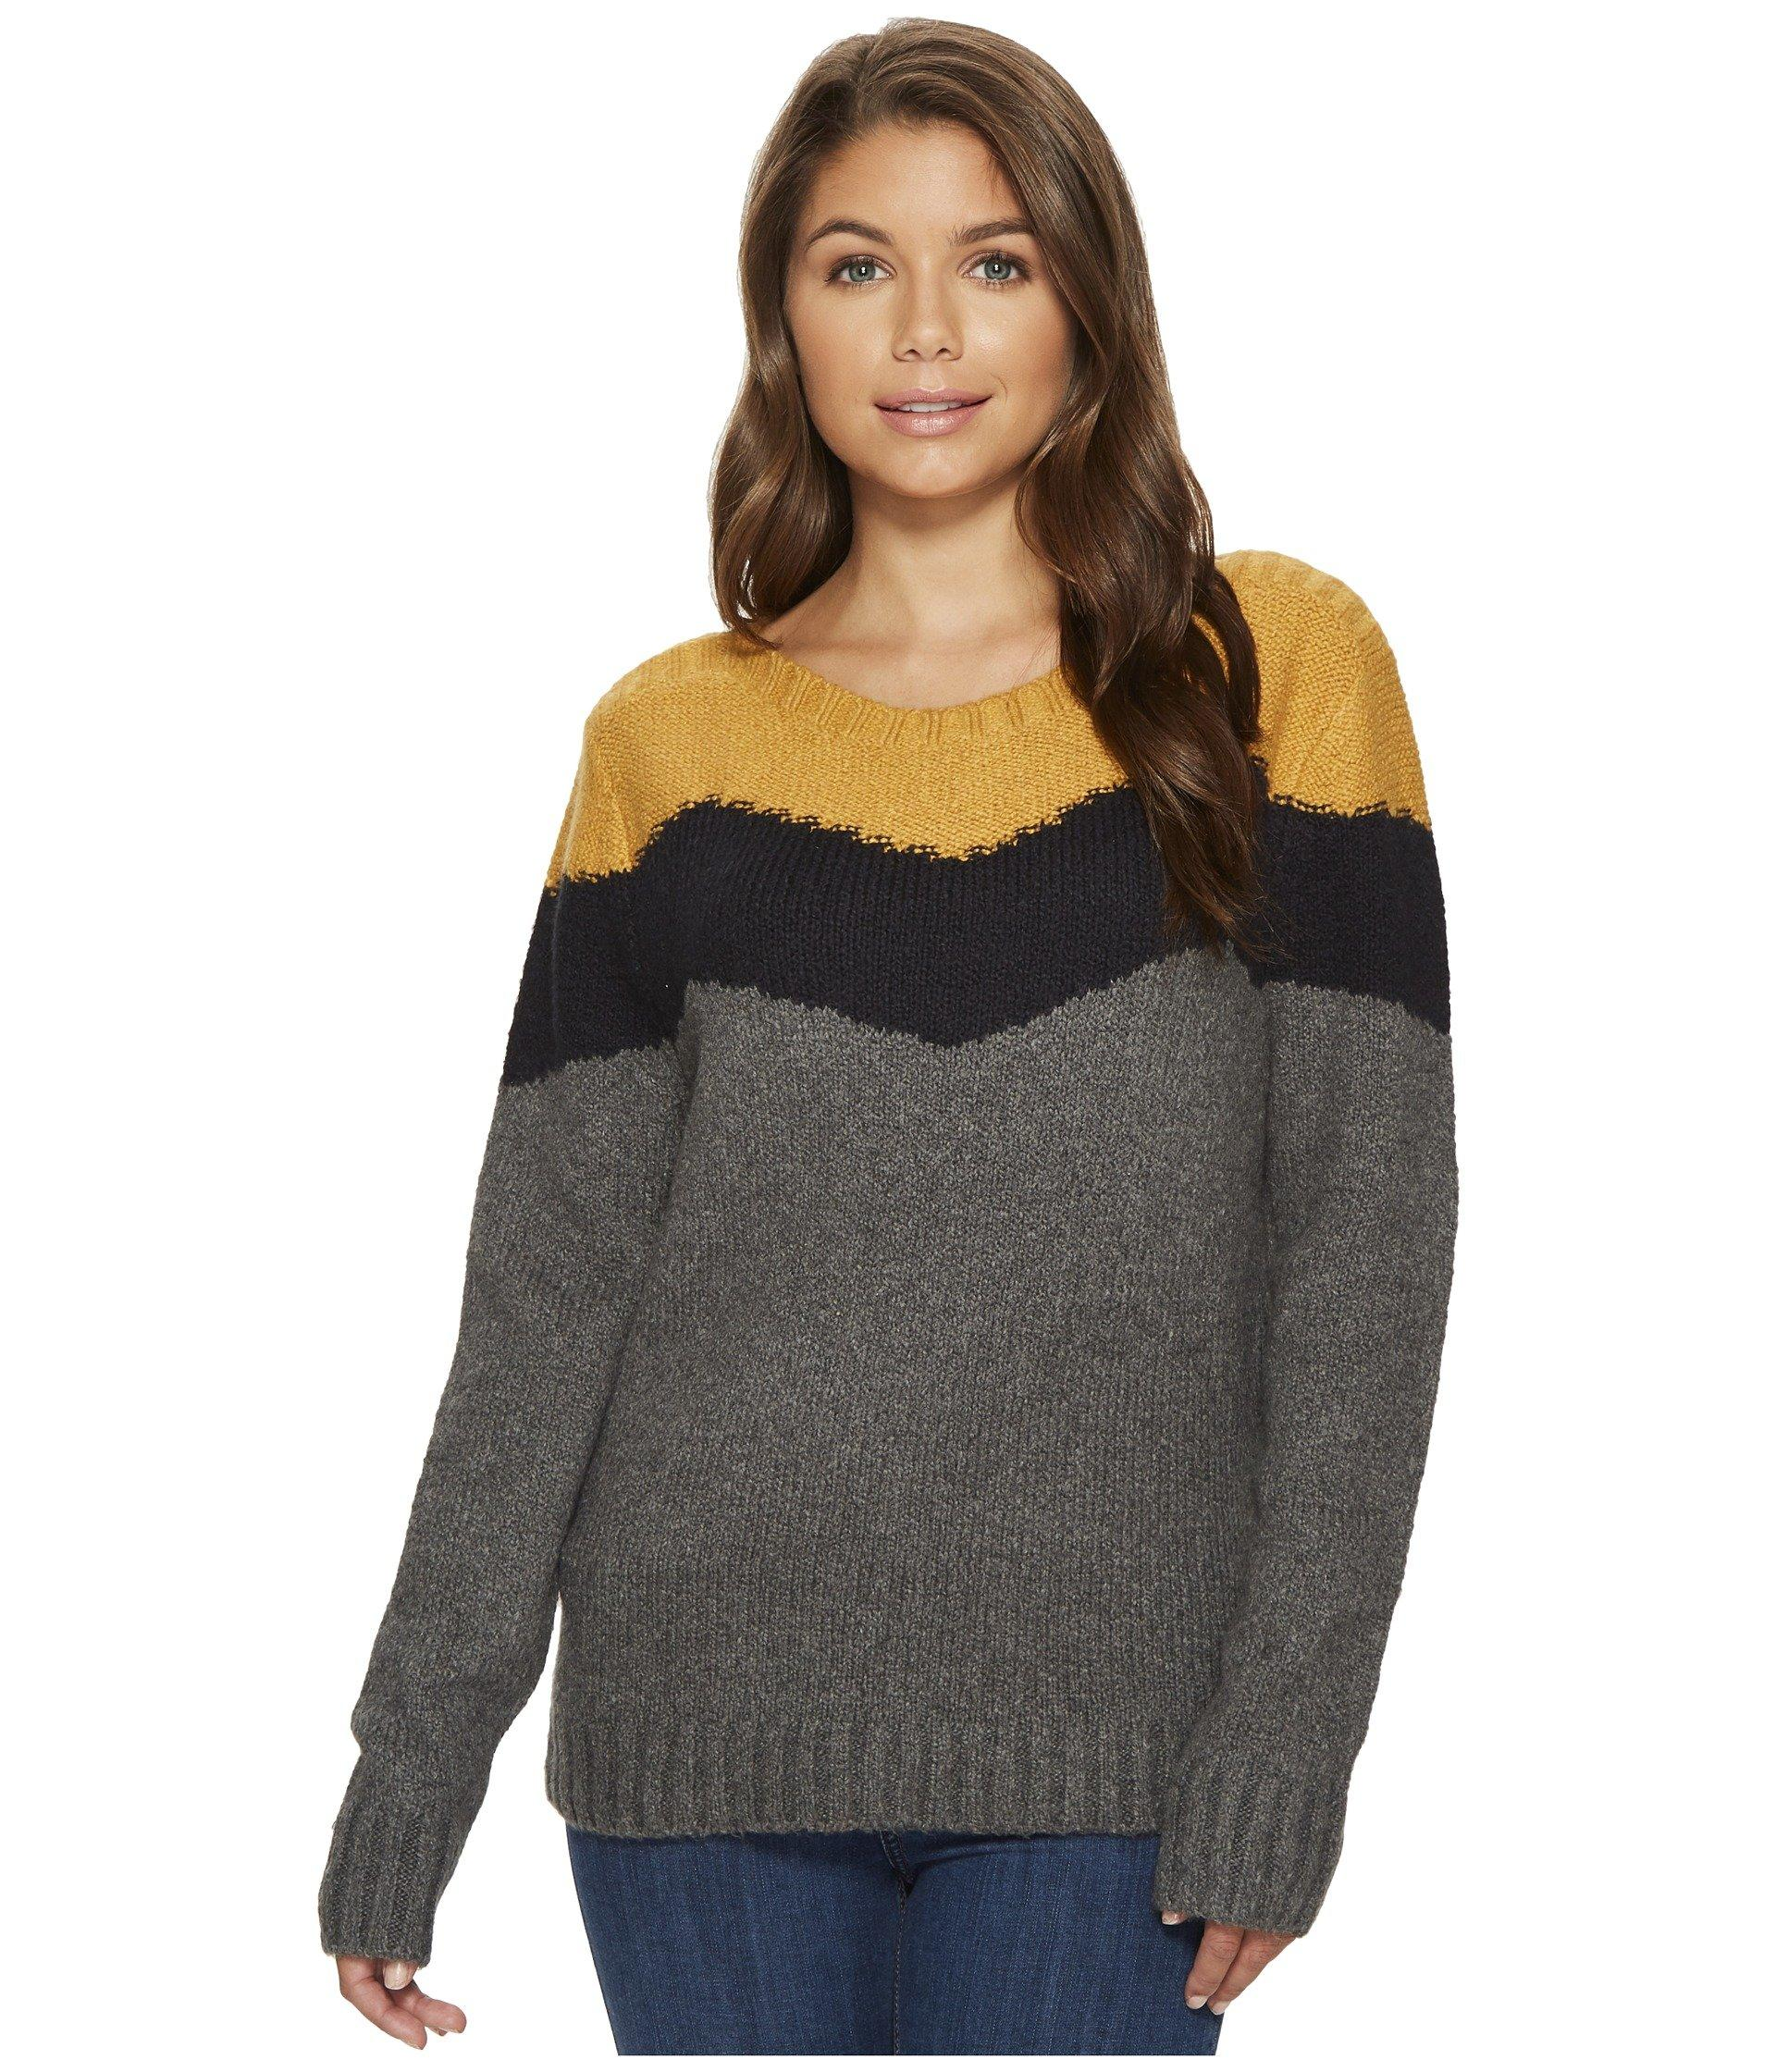 Roxy Love Endures Sweater In Charcoal Heather